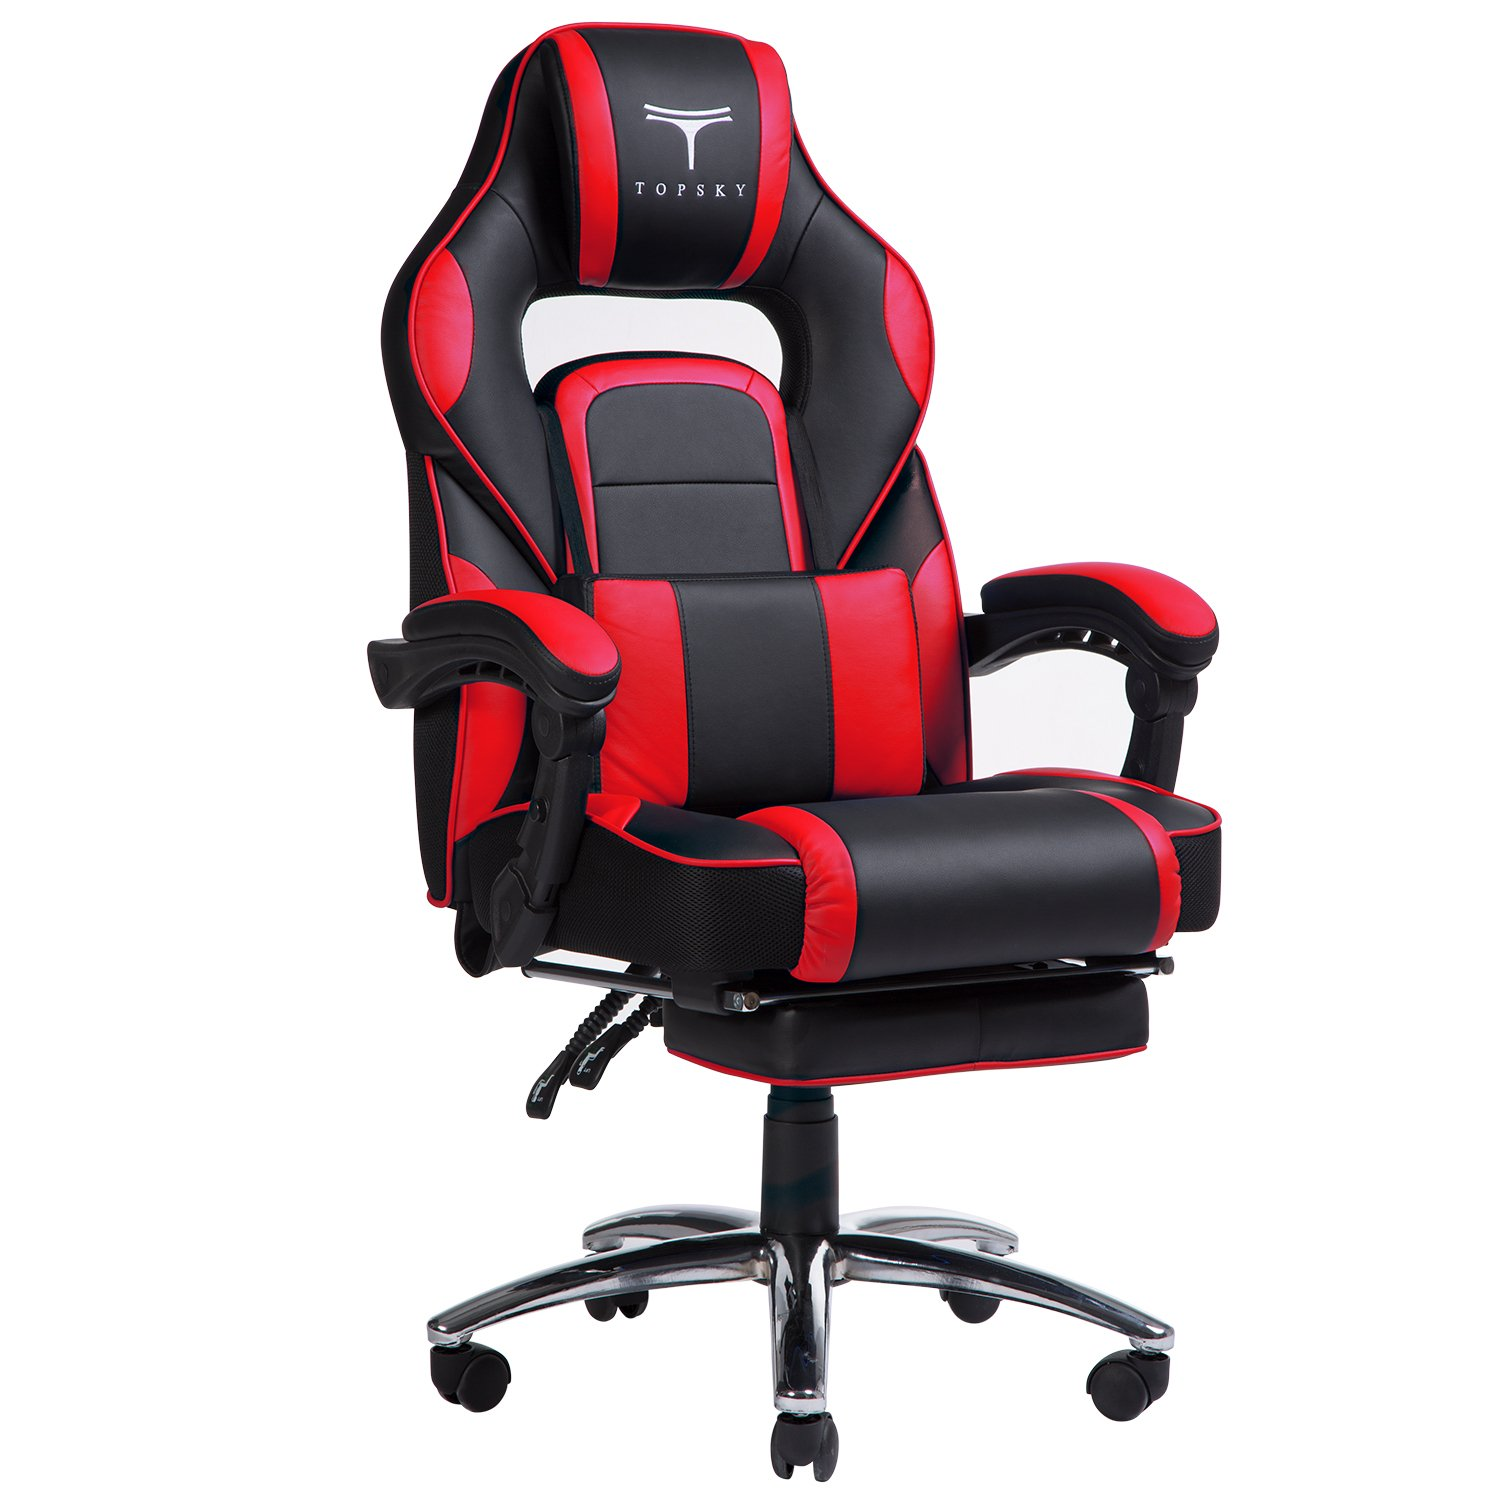 TOPSKY High Back Racing Style PU Leather Computer Gaming Office Chair (Red) Ergonomic Reclining Design with Lumbar Cushion Footrest and Headrest by TOPSKY